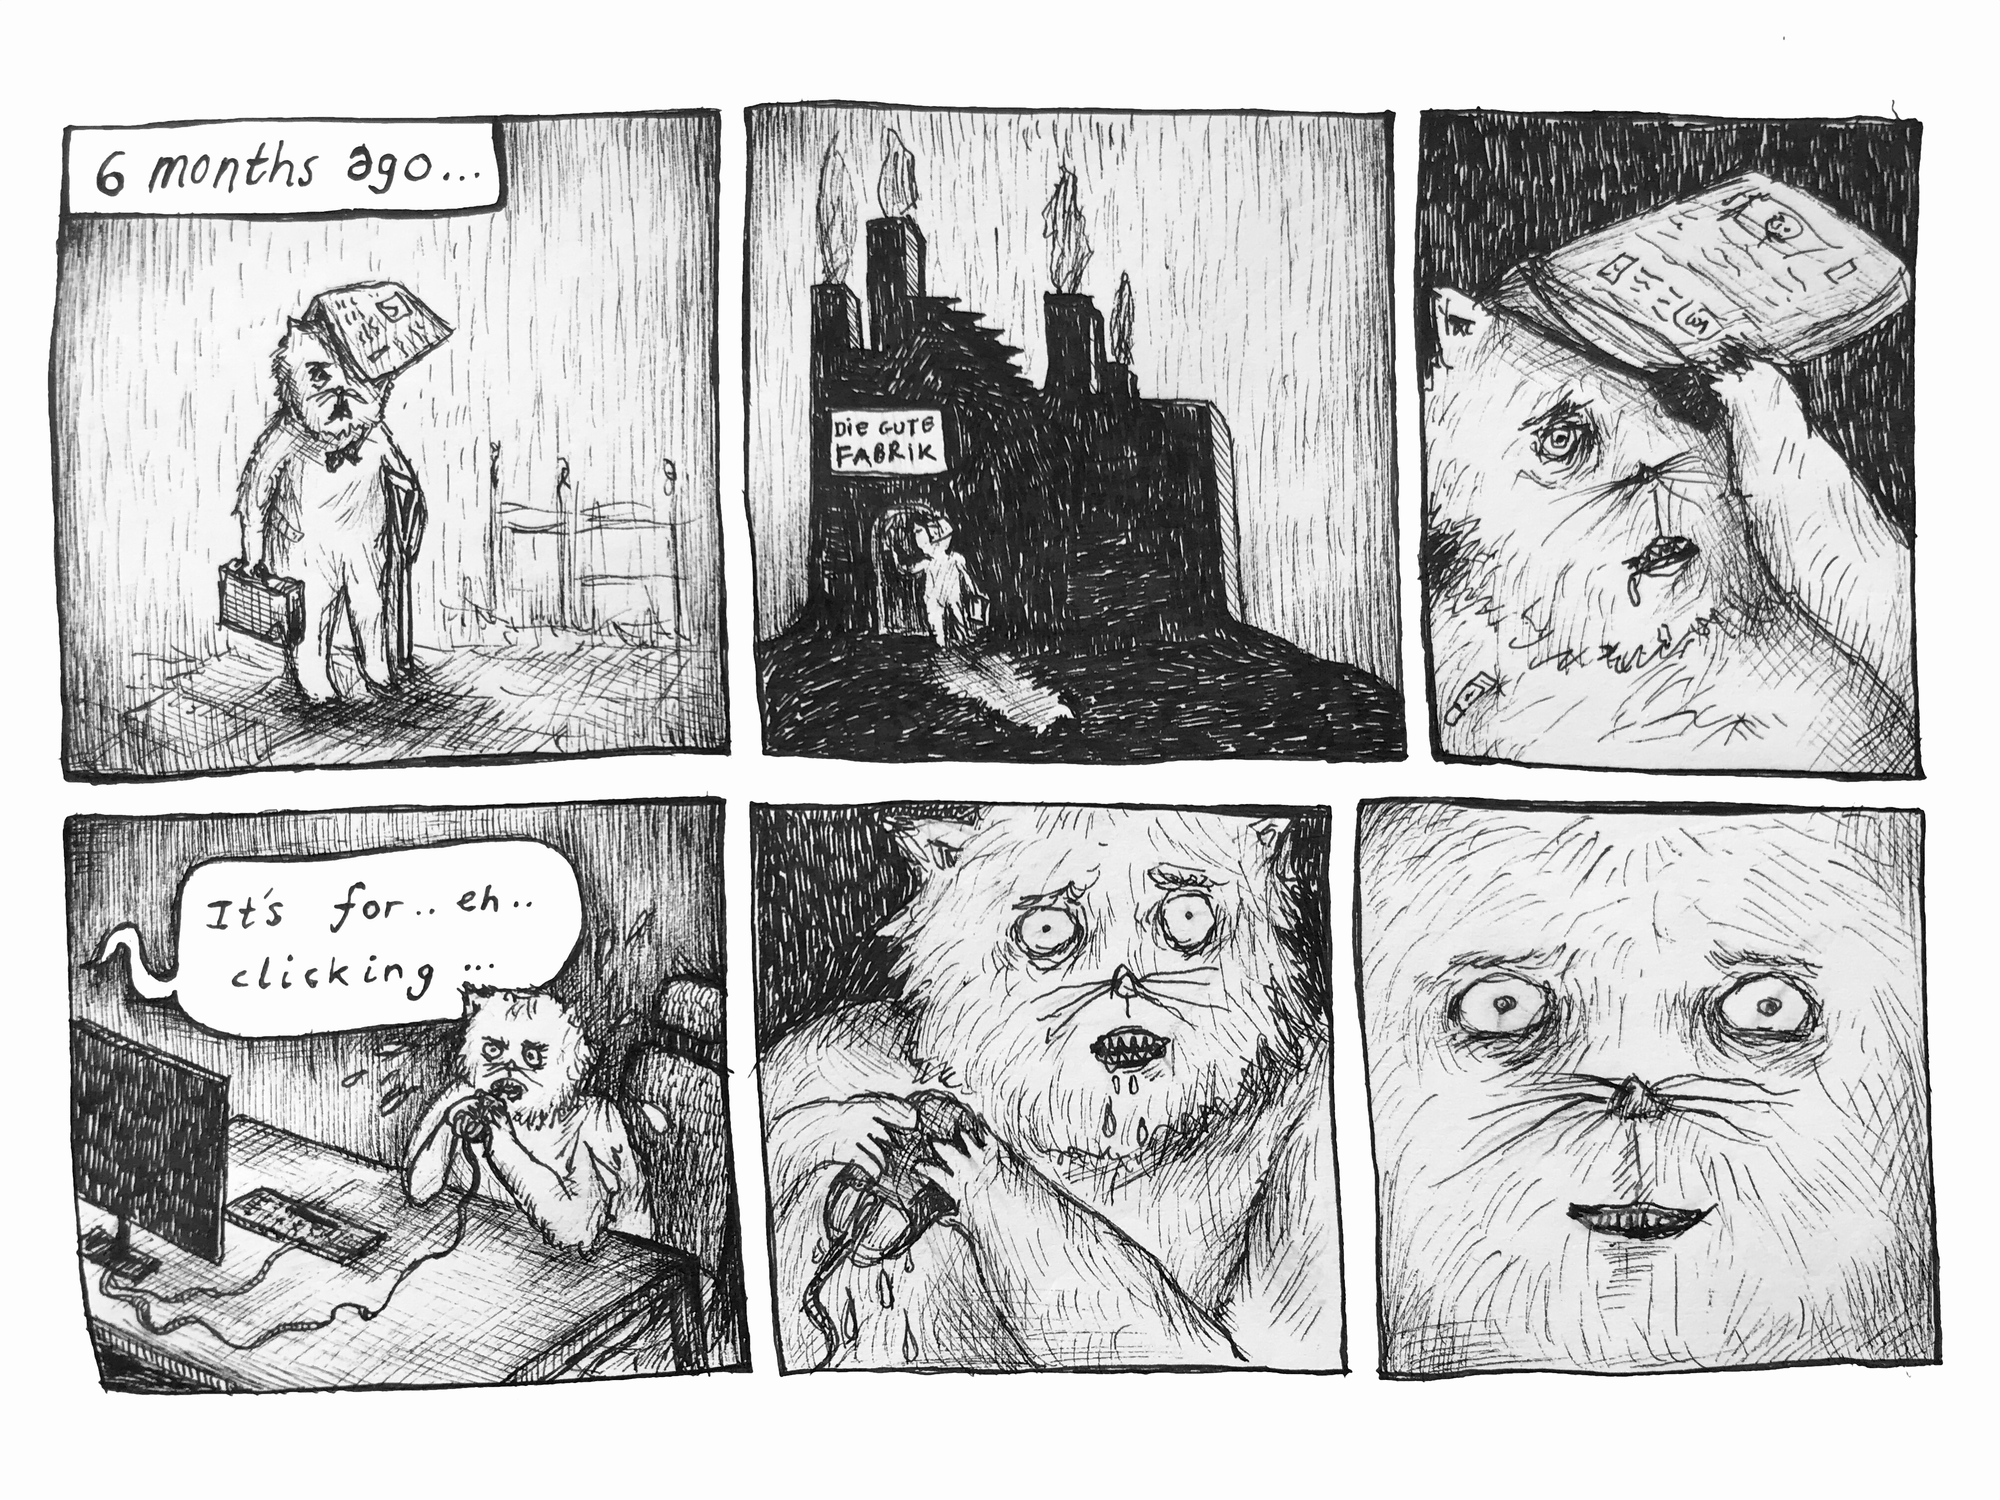 a 6 panel comic which starts '6 months ago', a shabby cat arrives at a place, panel 2 shows it entering somewhere labelled 'die gute fabrik' panel 3, the shabby cat smartens up, panel 4, it tries to eat a computer mouse while a speech bubble reads 'it's for... eg... clicking...', panel 5 the cat slowly puts down the mouse, panel 6 the cat fills the panel, smiling